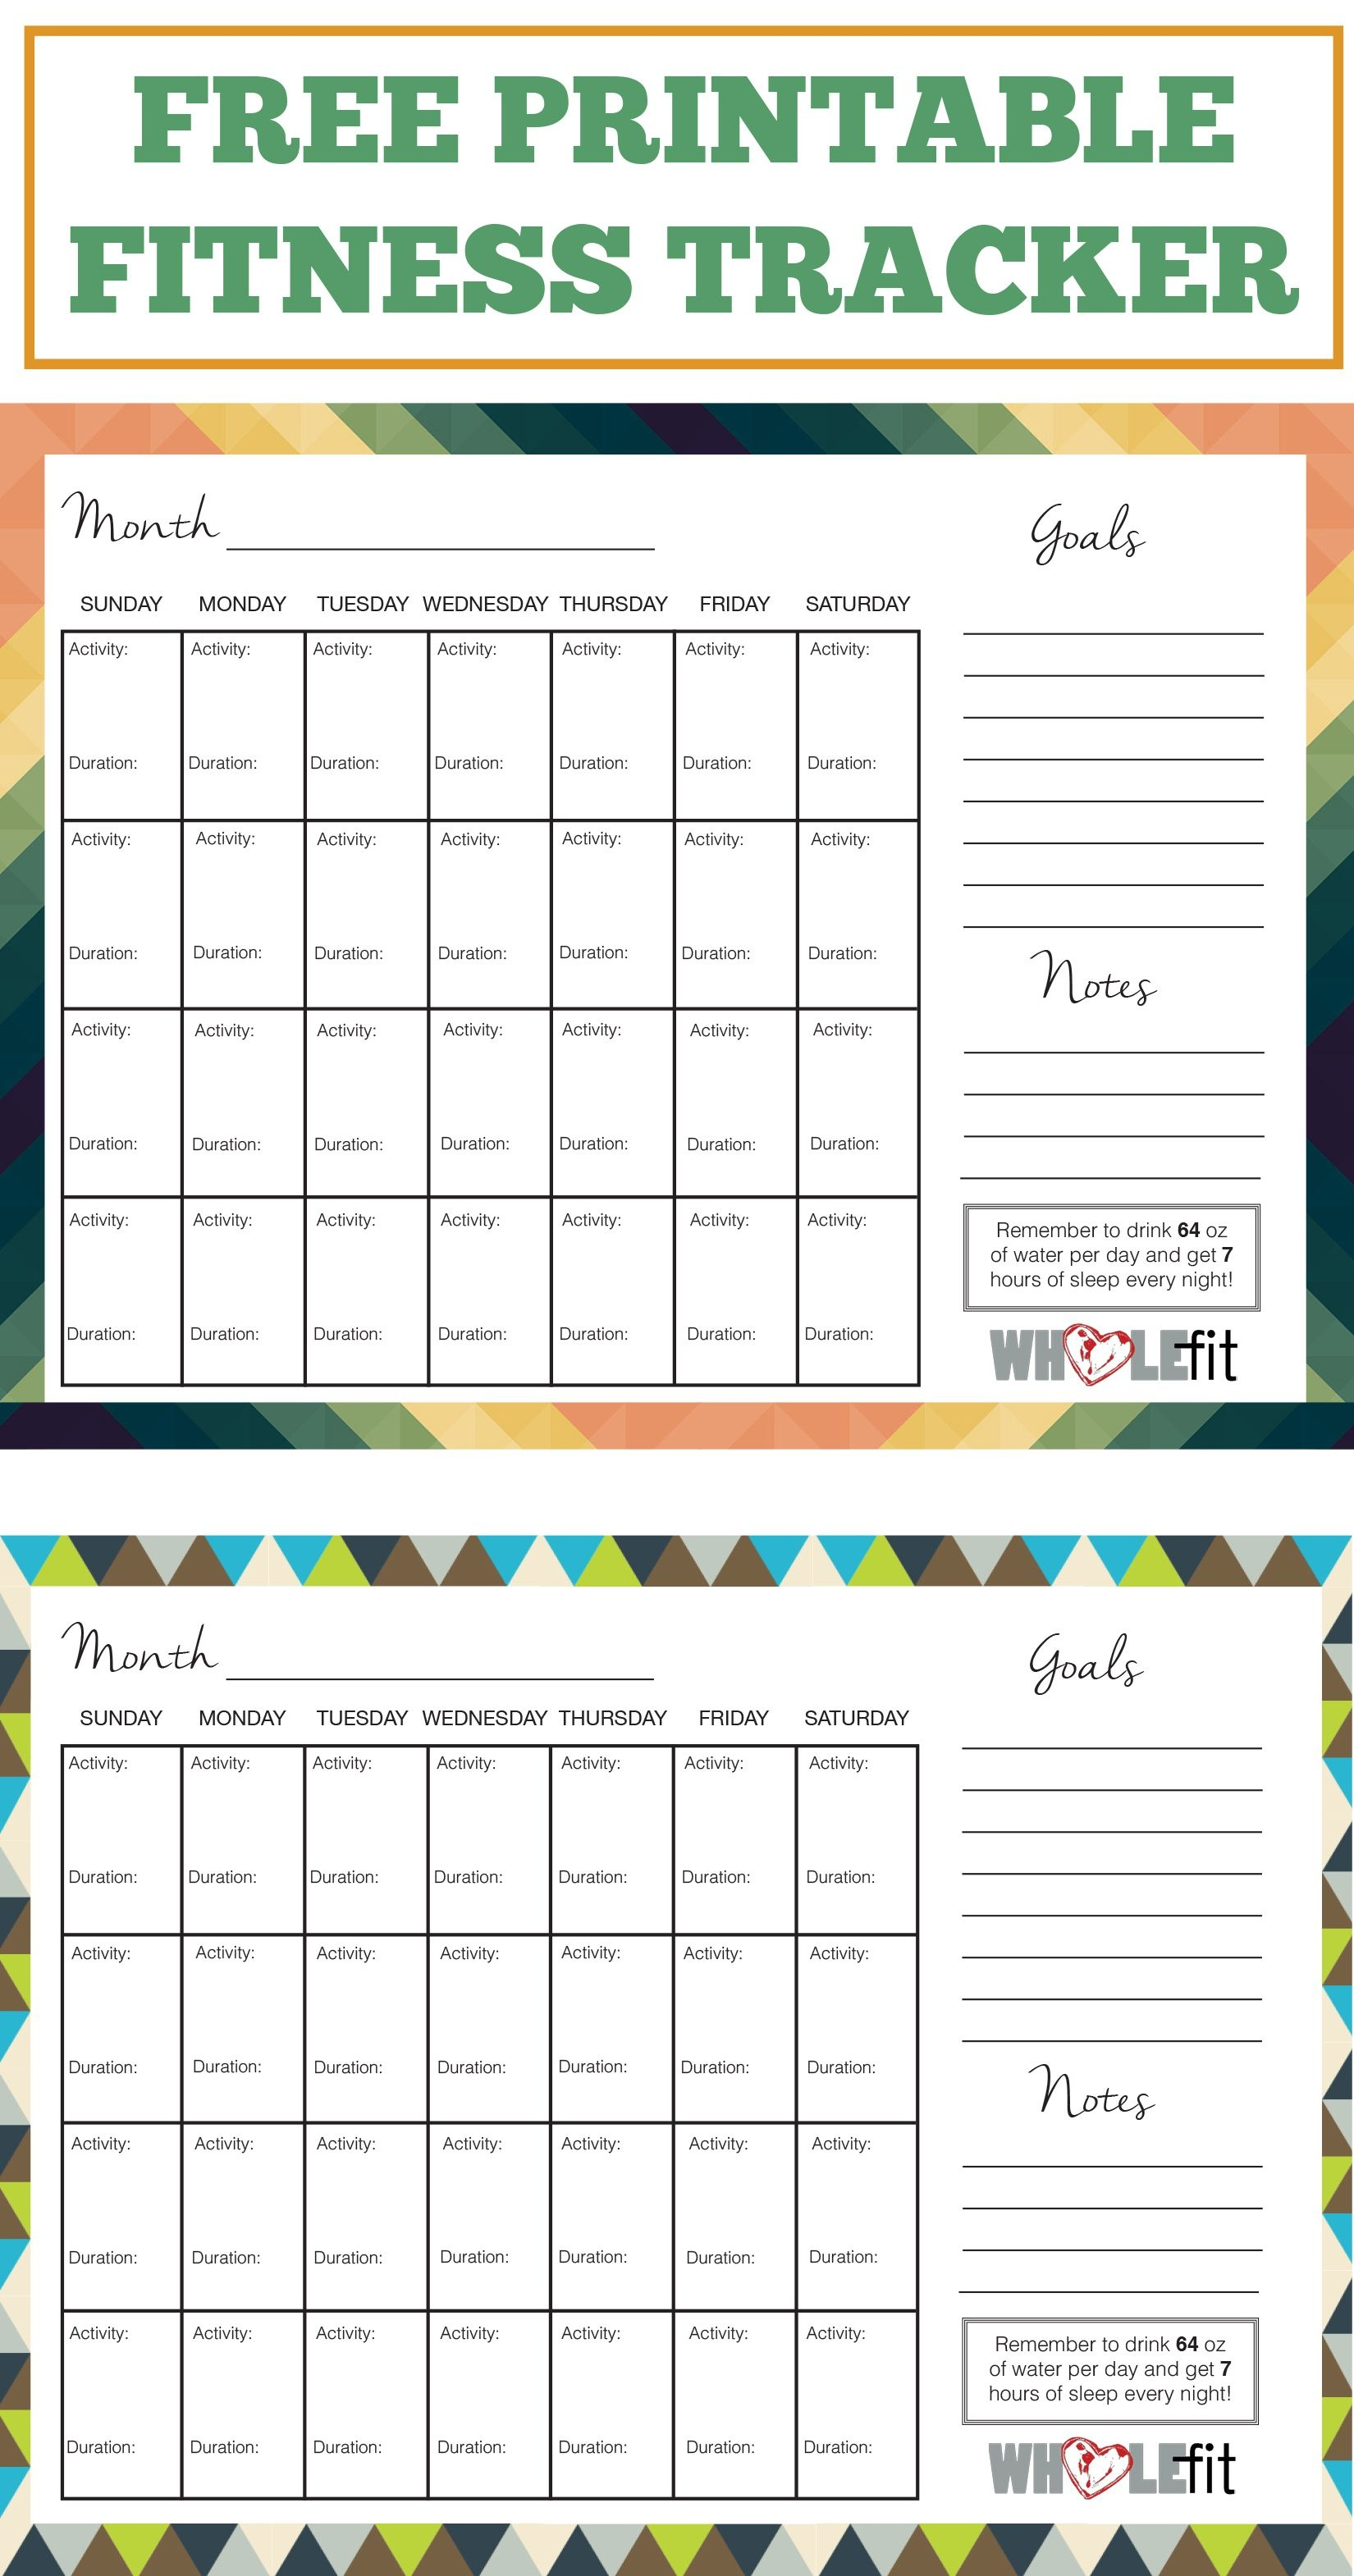 Track Your Progress With These Free Printable Fitness Trackers! | My - Free Printable Fitness Worksheets